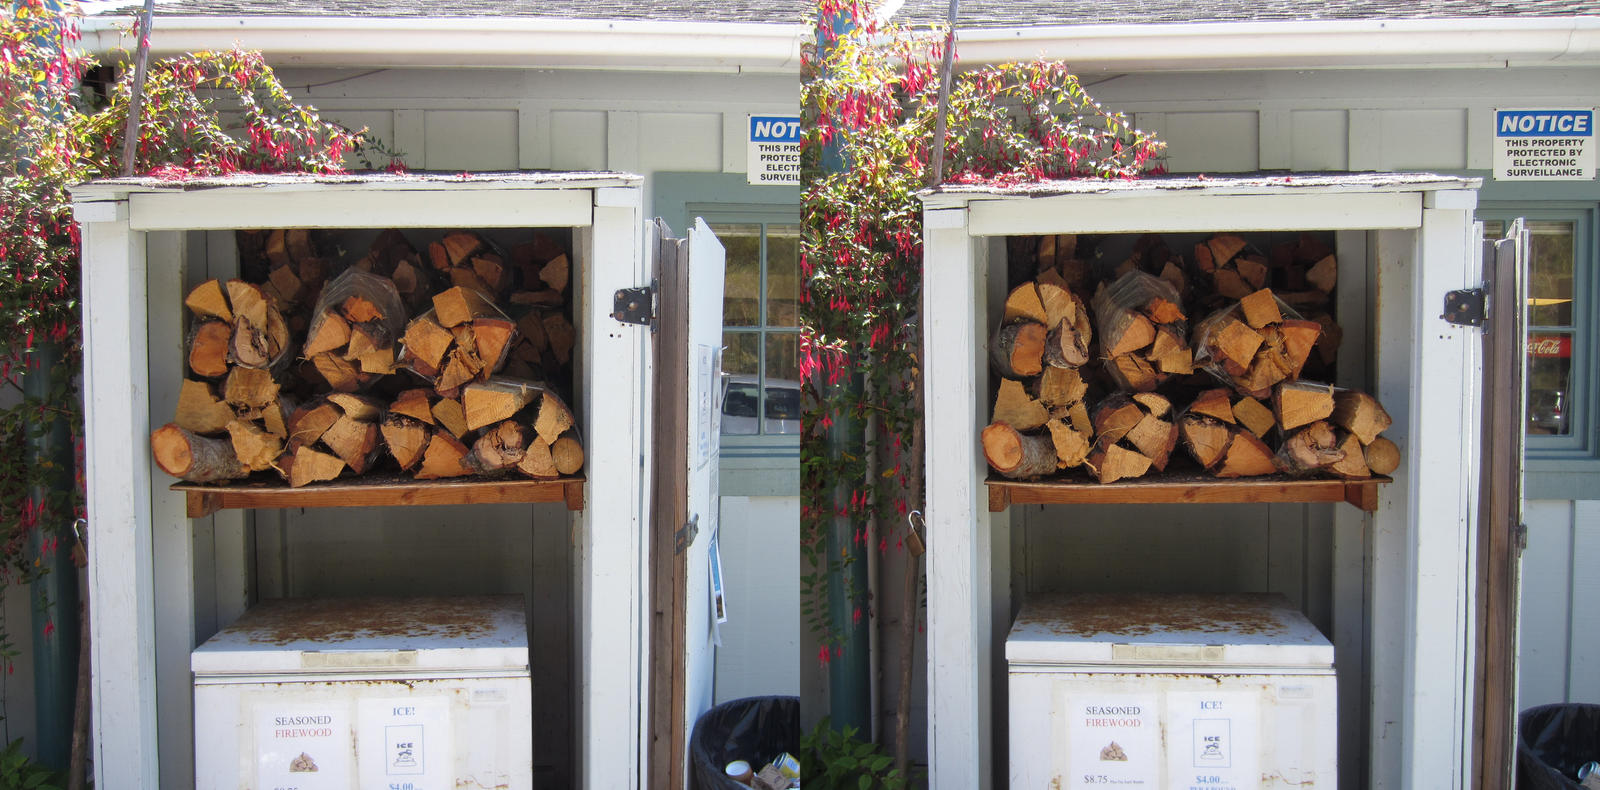 Stereograph - Firewood by alanbecker